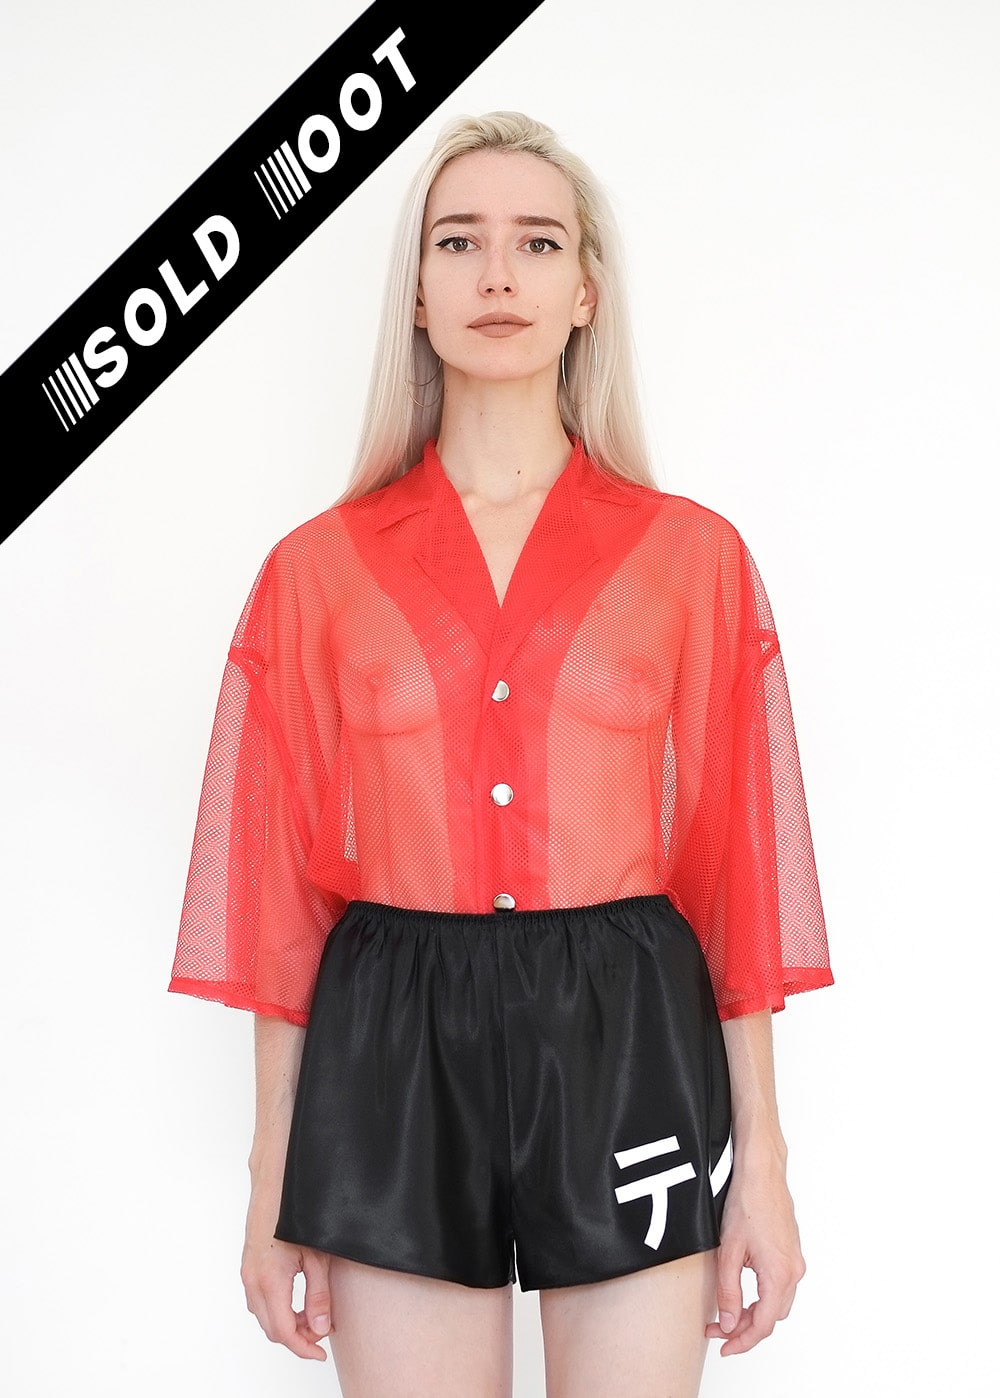 LIMITED ED Red Mesh Shirt 361